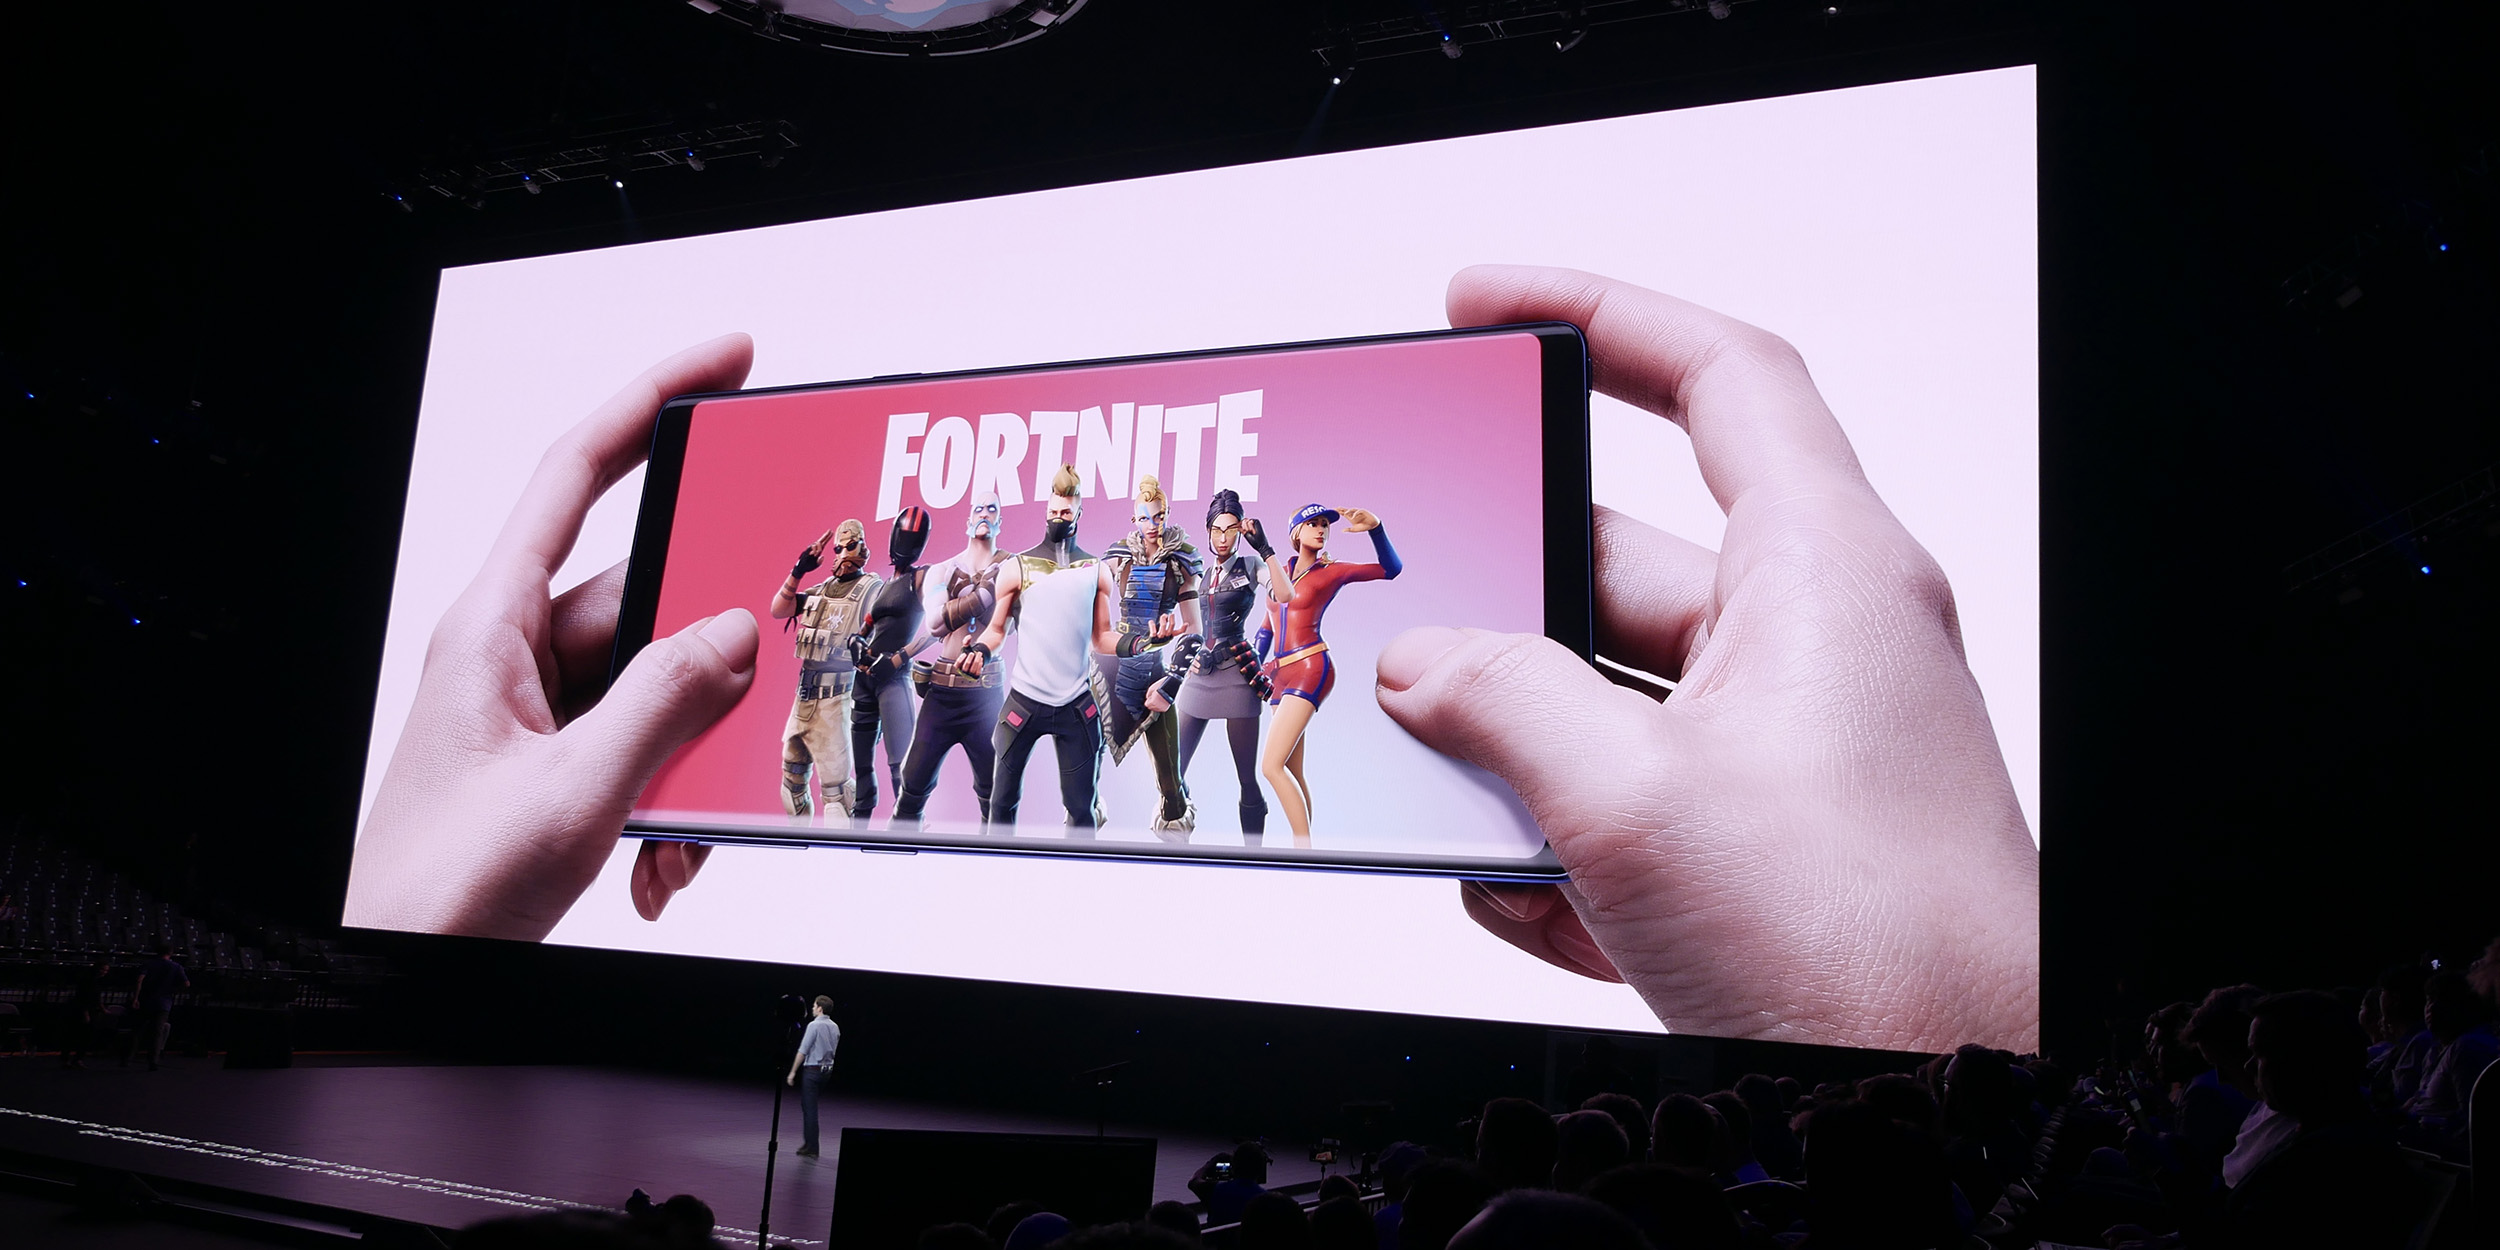 samsung contest lets you squad up w ninja on fortnite 10 000 v bucks for galaxy note 9 tab s4 buyers